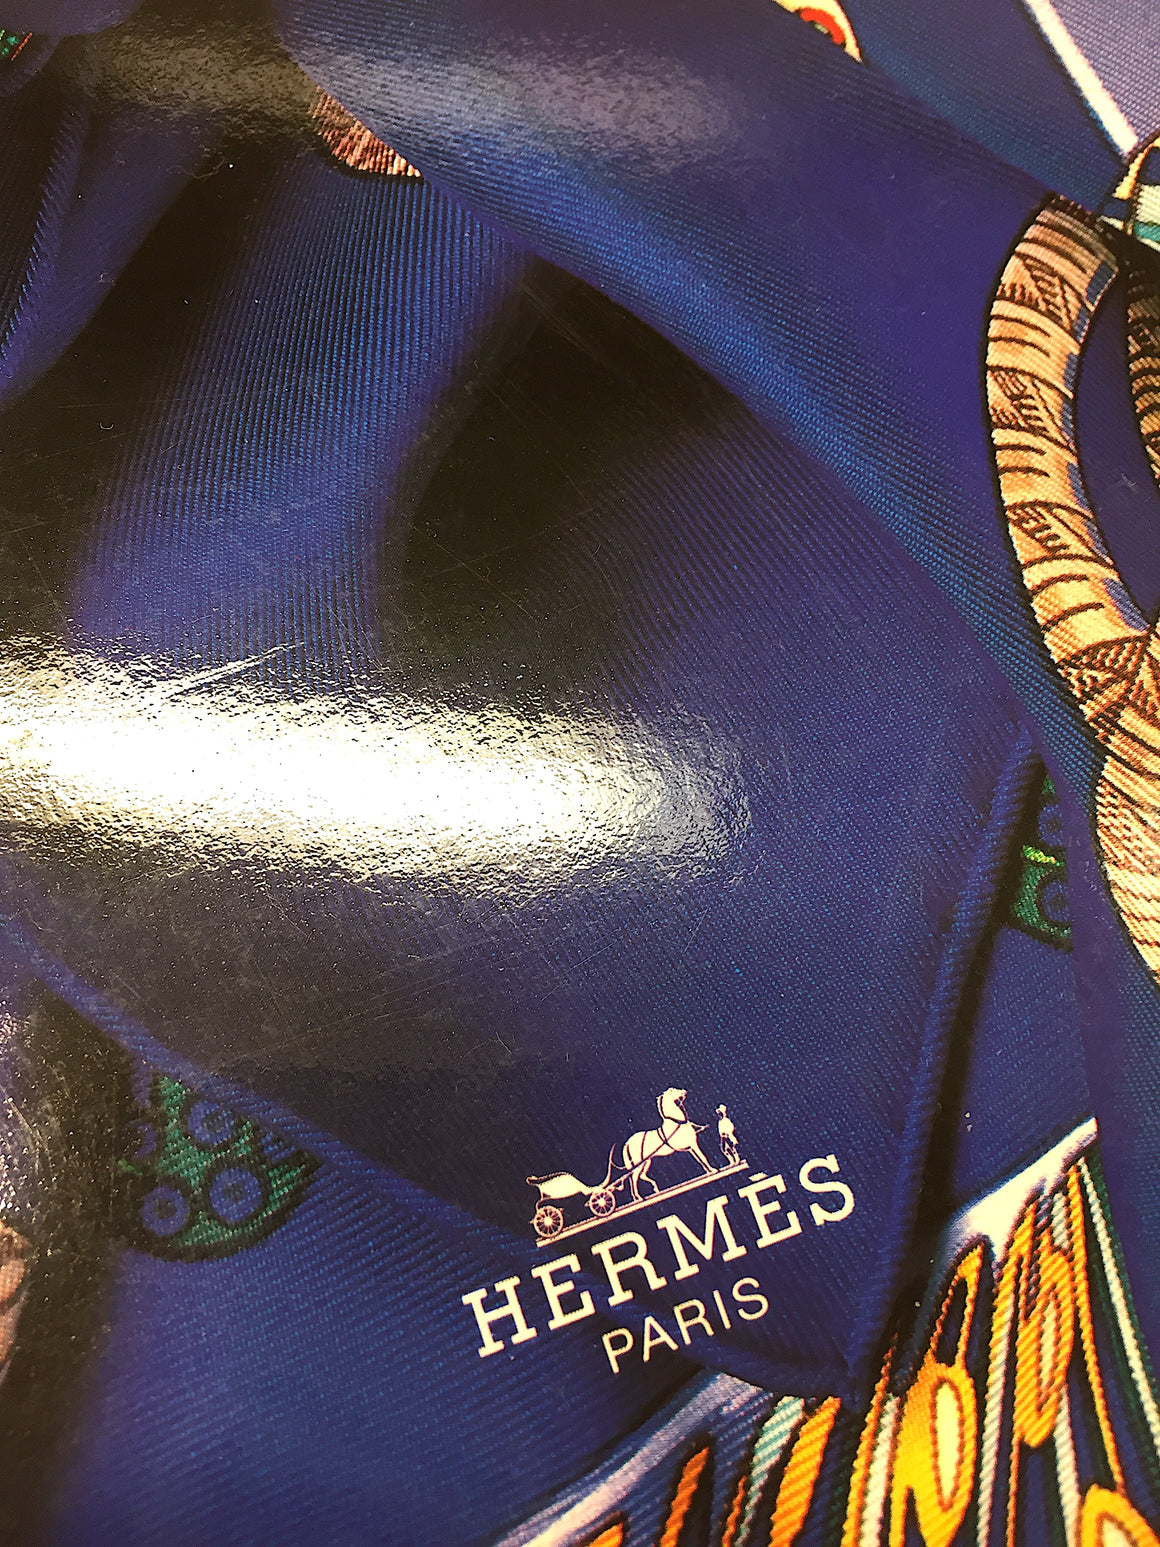 Vintage HERMES - HOW TO WEAR YOUR HERMES SCARF Fashion Booklet